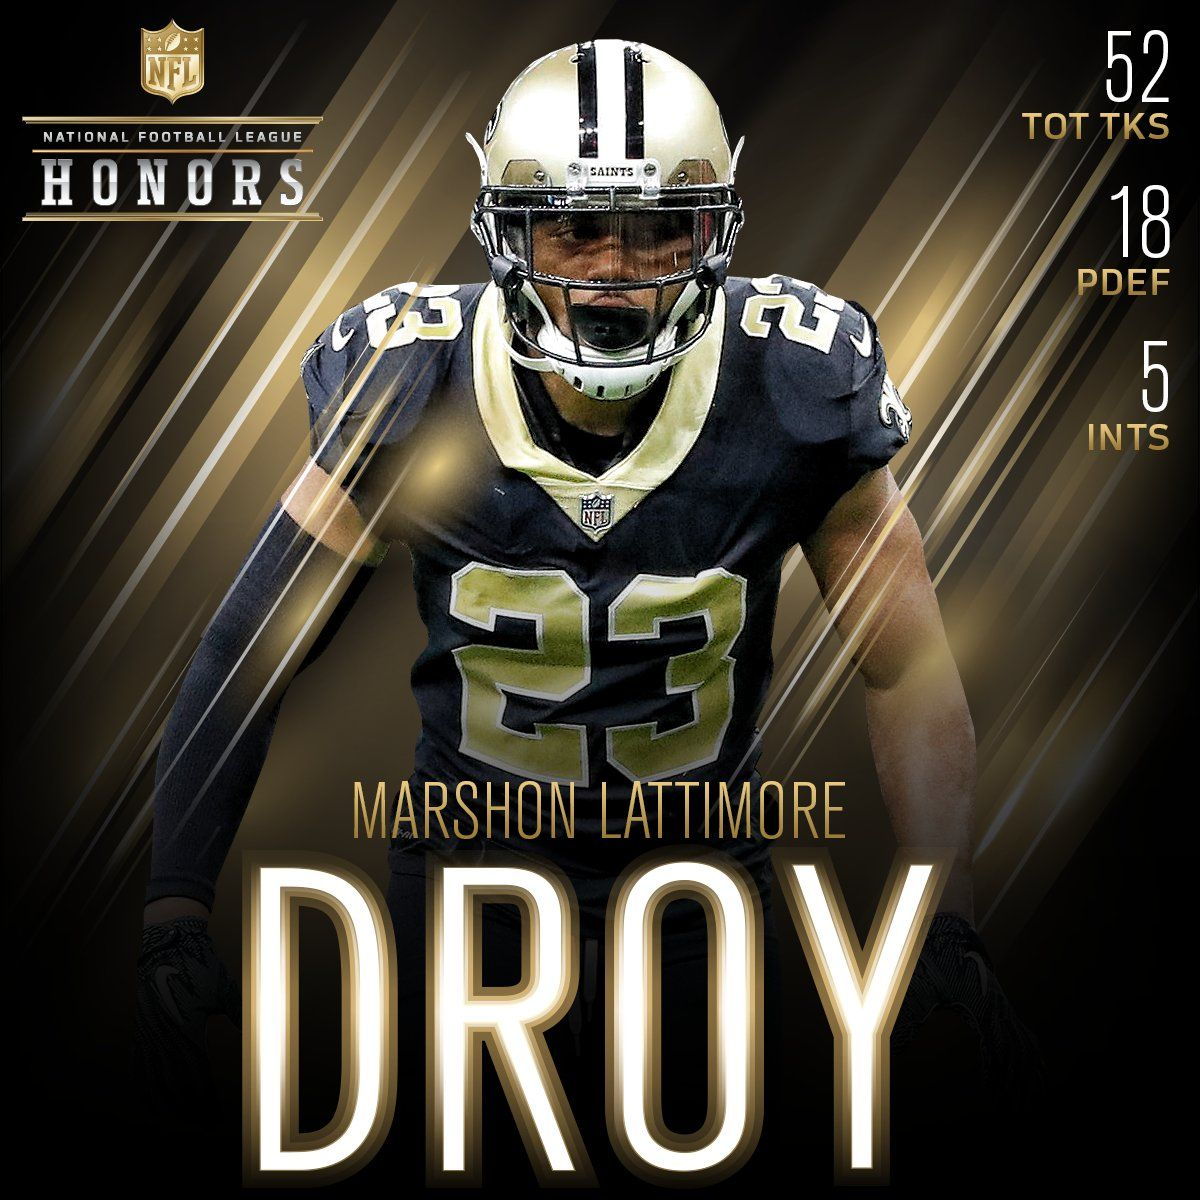 ef2cabb4f New Orleans Saints . Saints CB  shonrp2 is the 2017 Defensive Rookie of the  Year!  NFLHonors .